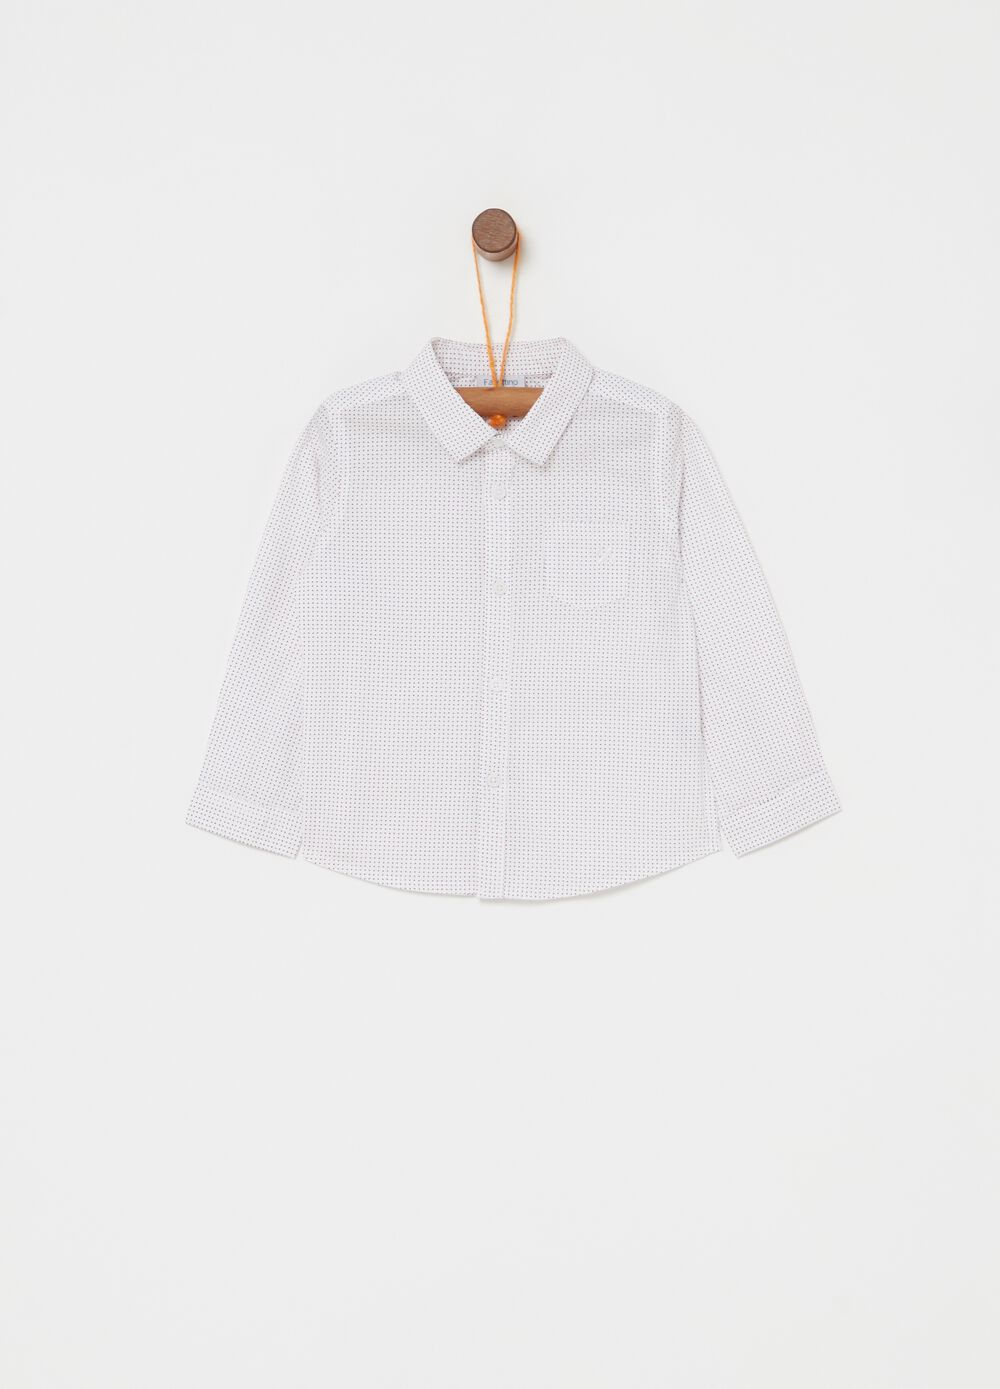 Pure cotton shirt with mini polka dot pattern